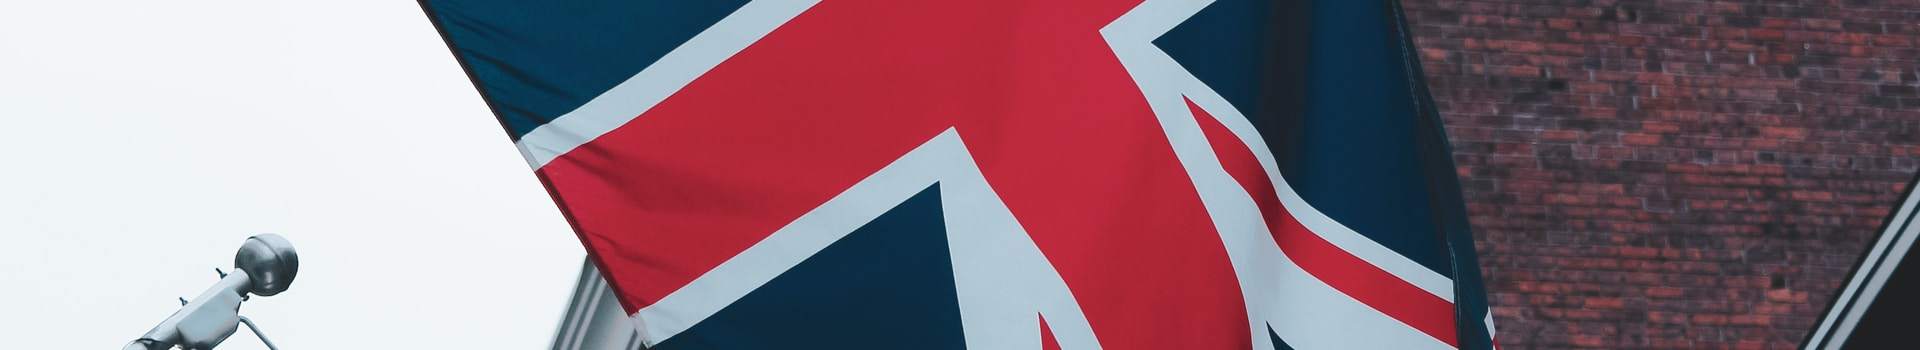 blue white and red star flag